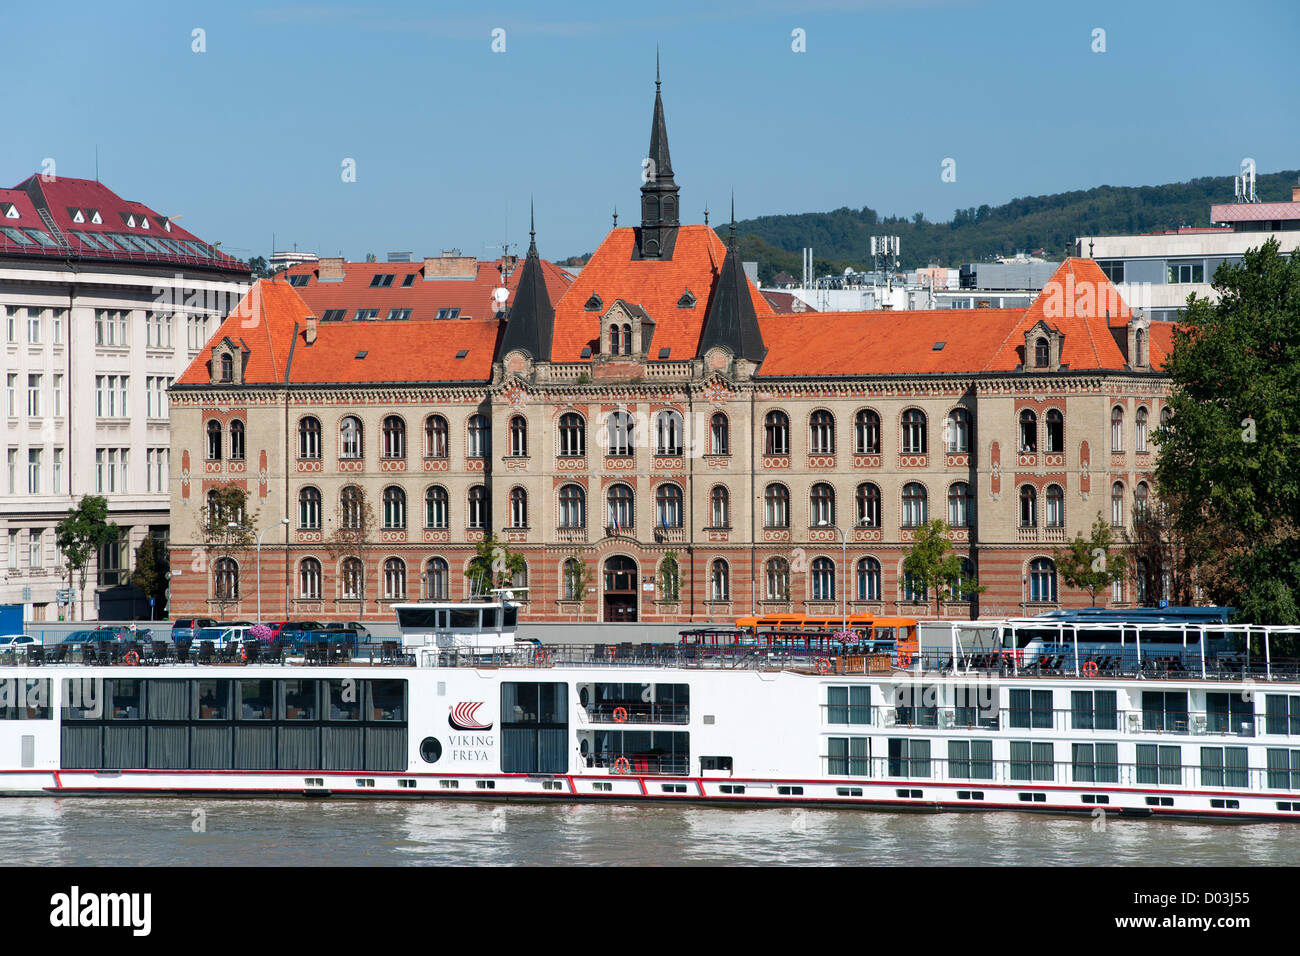 The Stredna Priemyselna Skola Strojnicka building on the banks of the Danube in Bratislava, the capital of Slovakia. - Stock Image